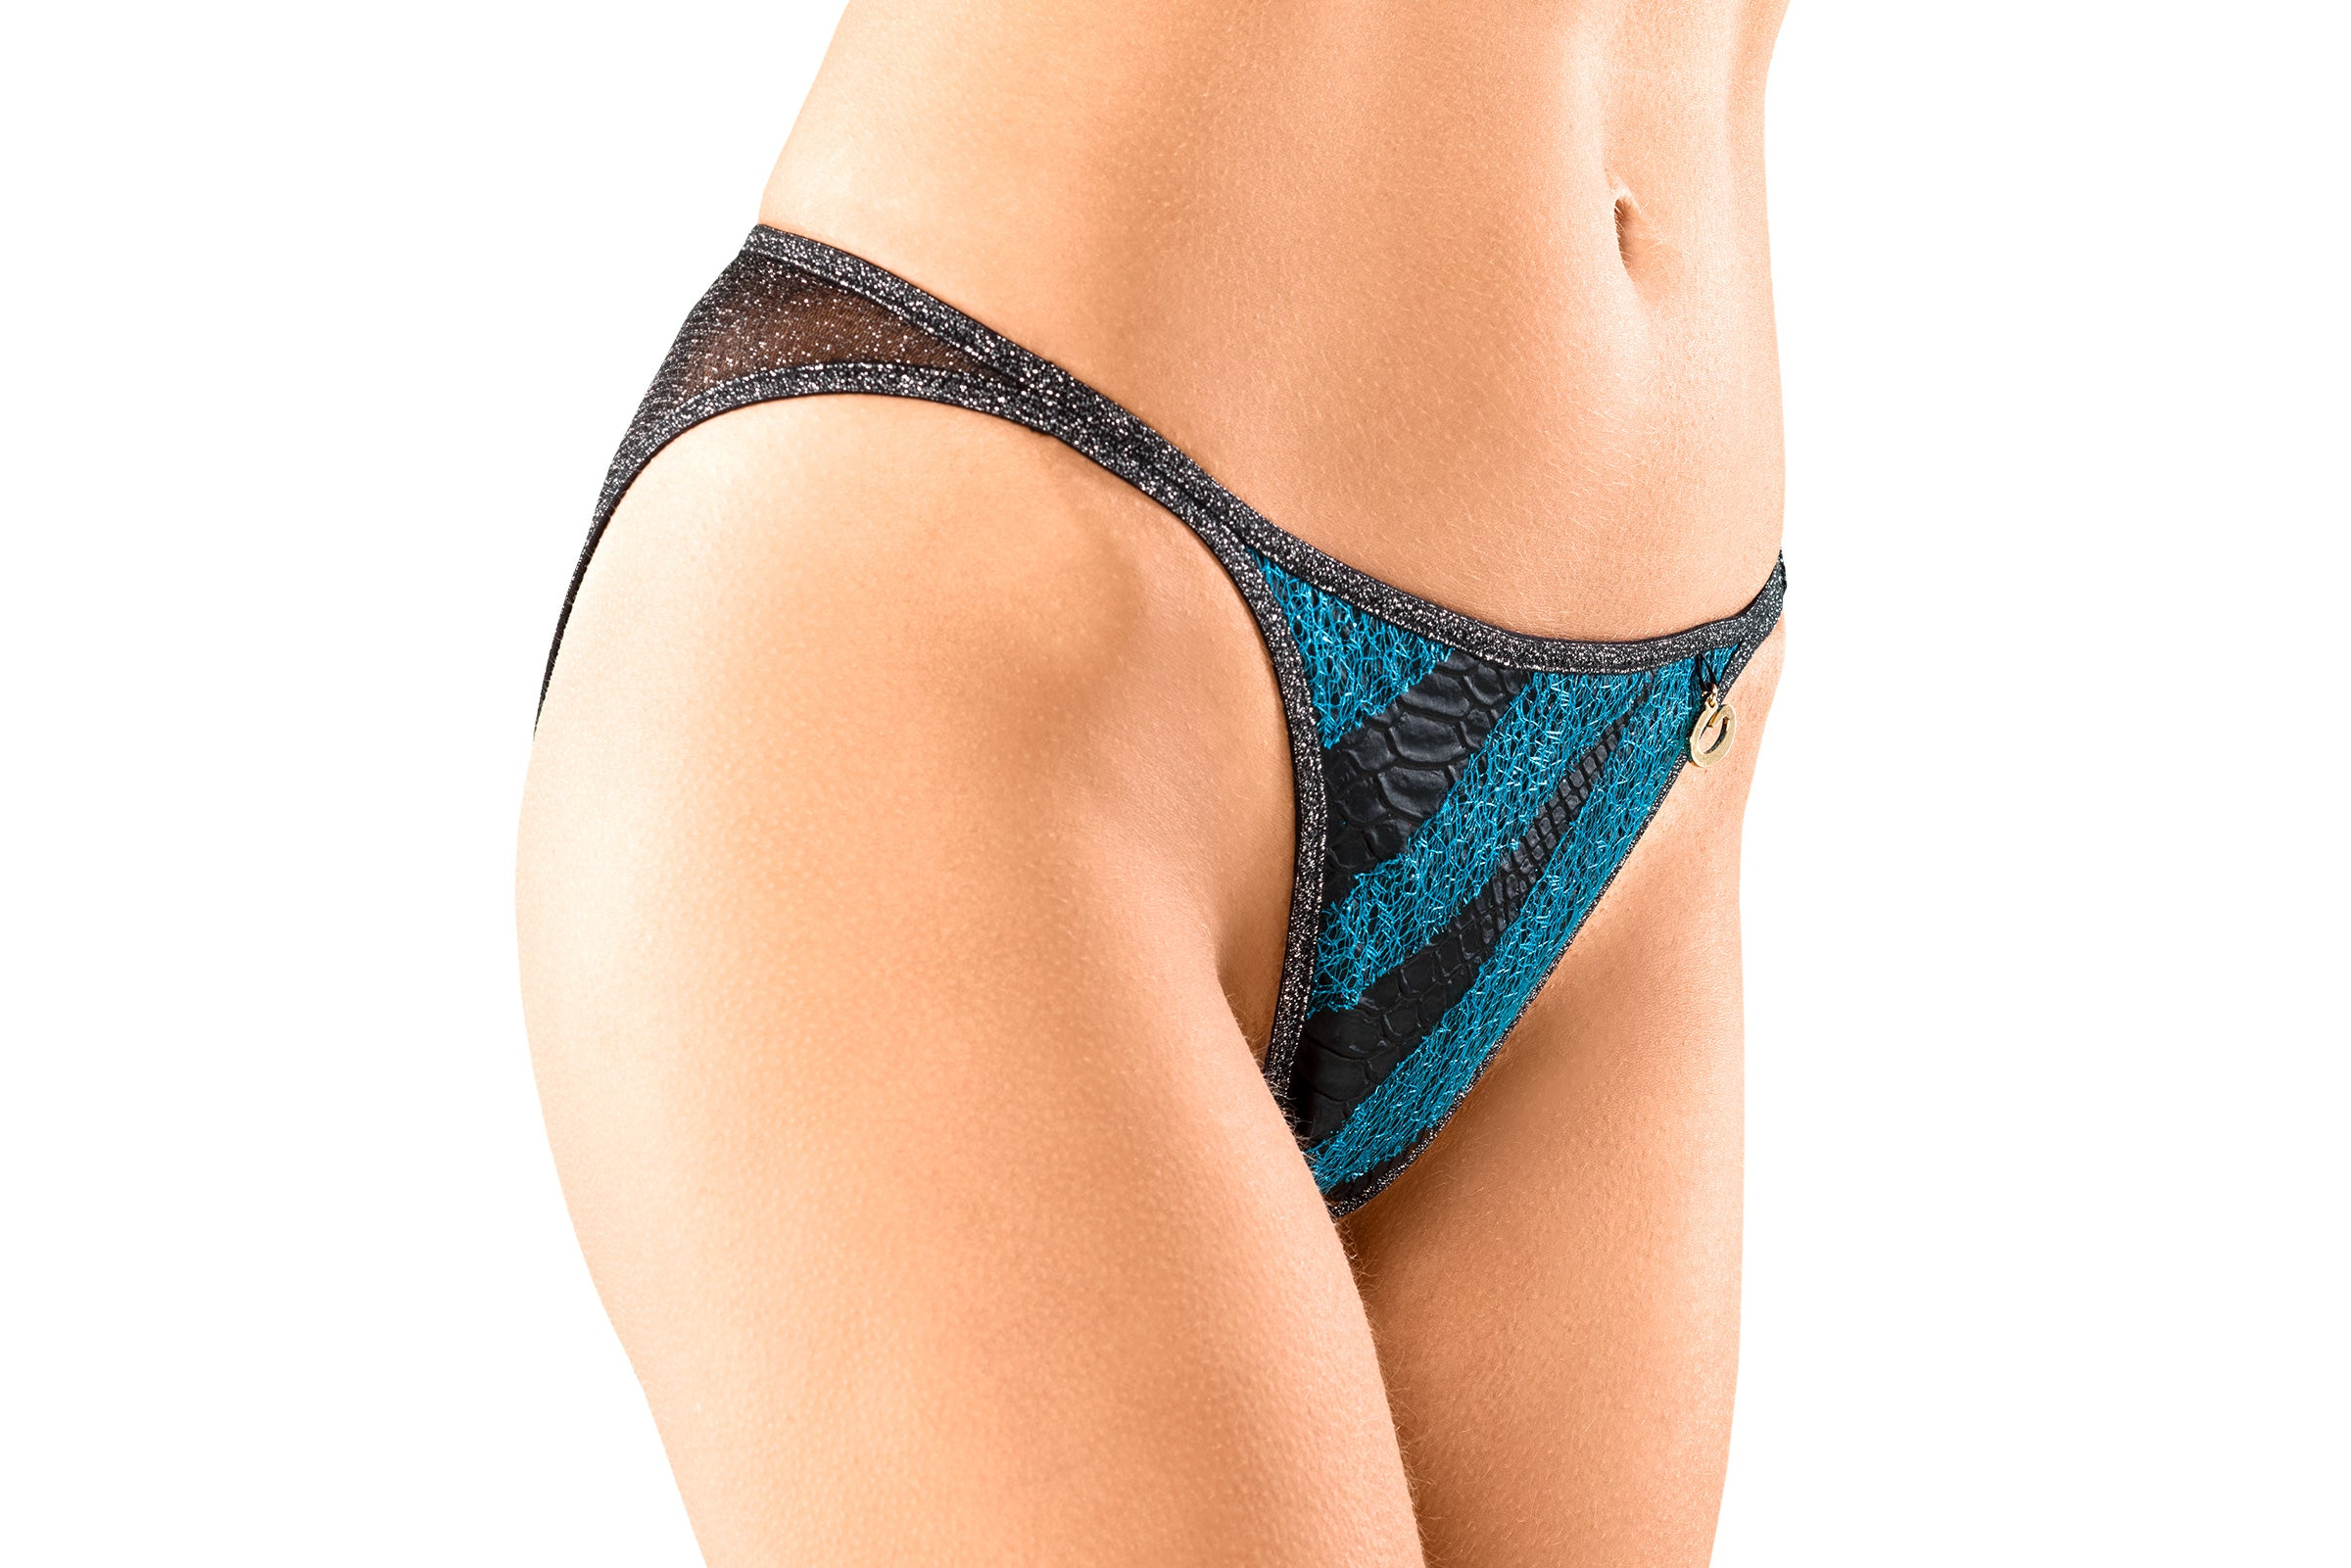 DRAGONSNAP ICE knicker